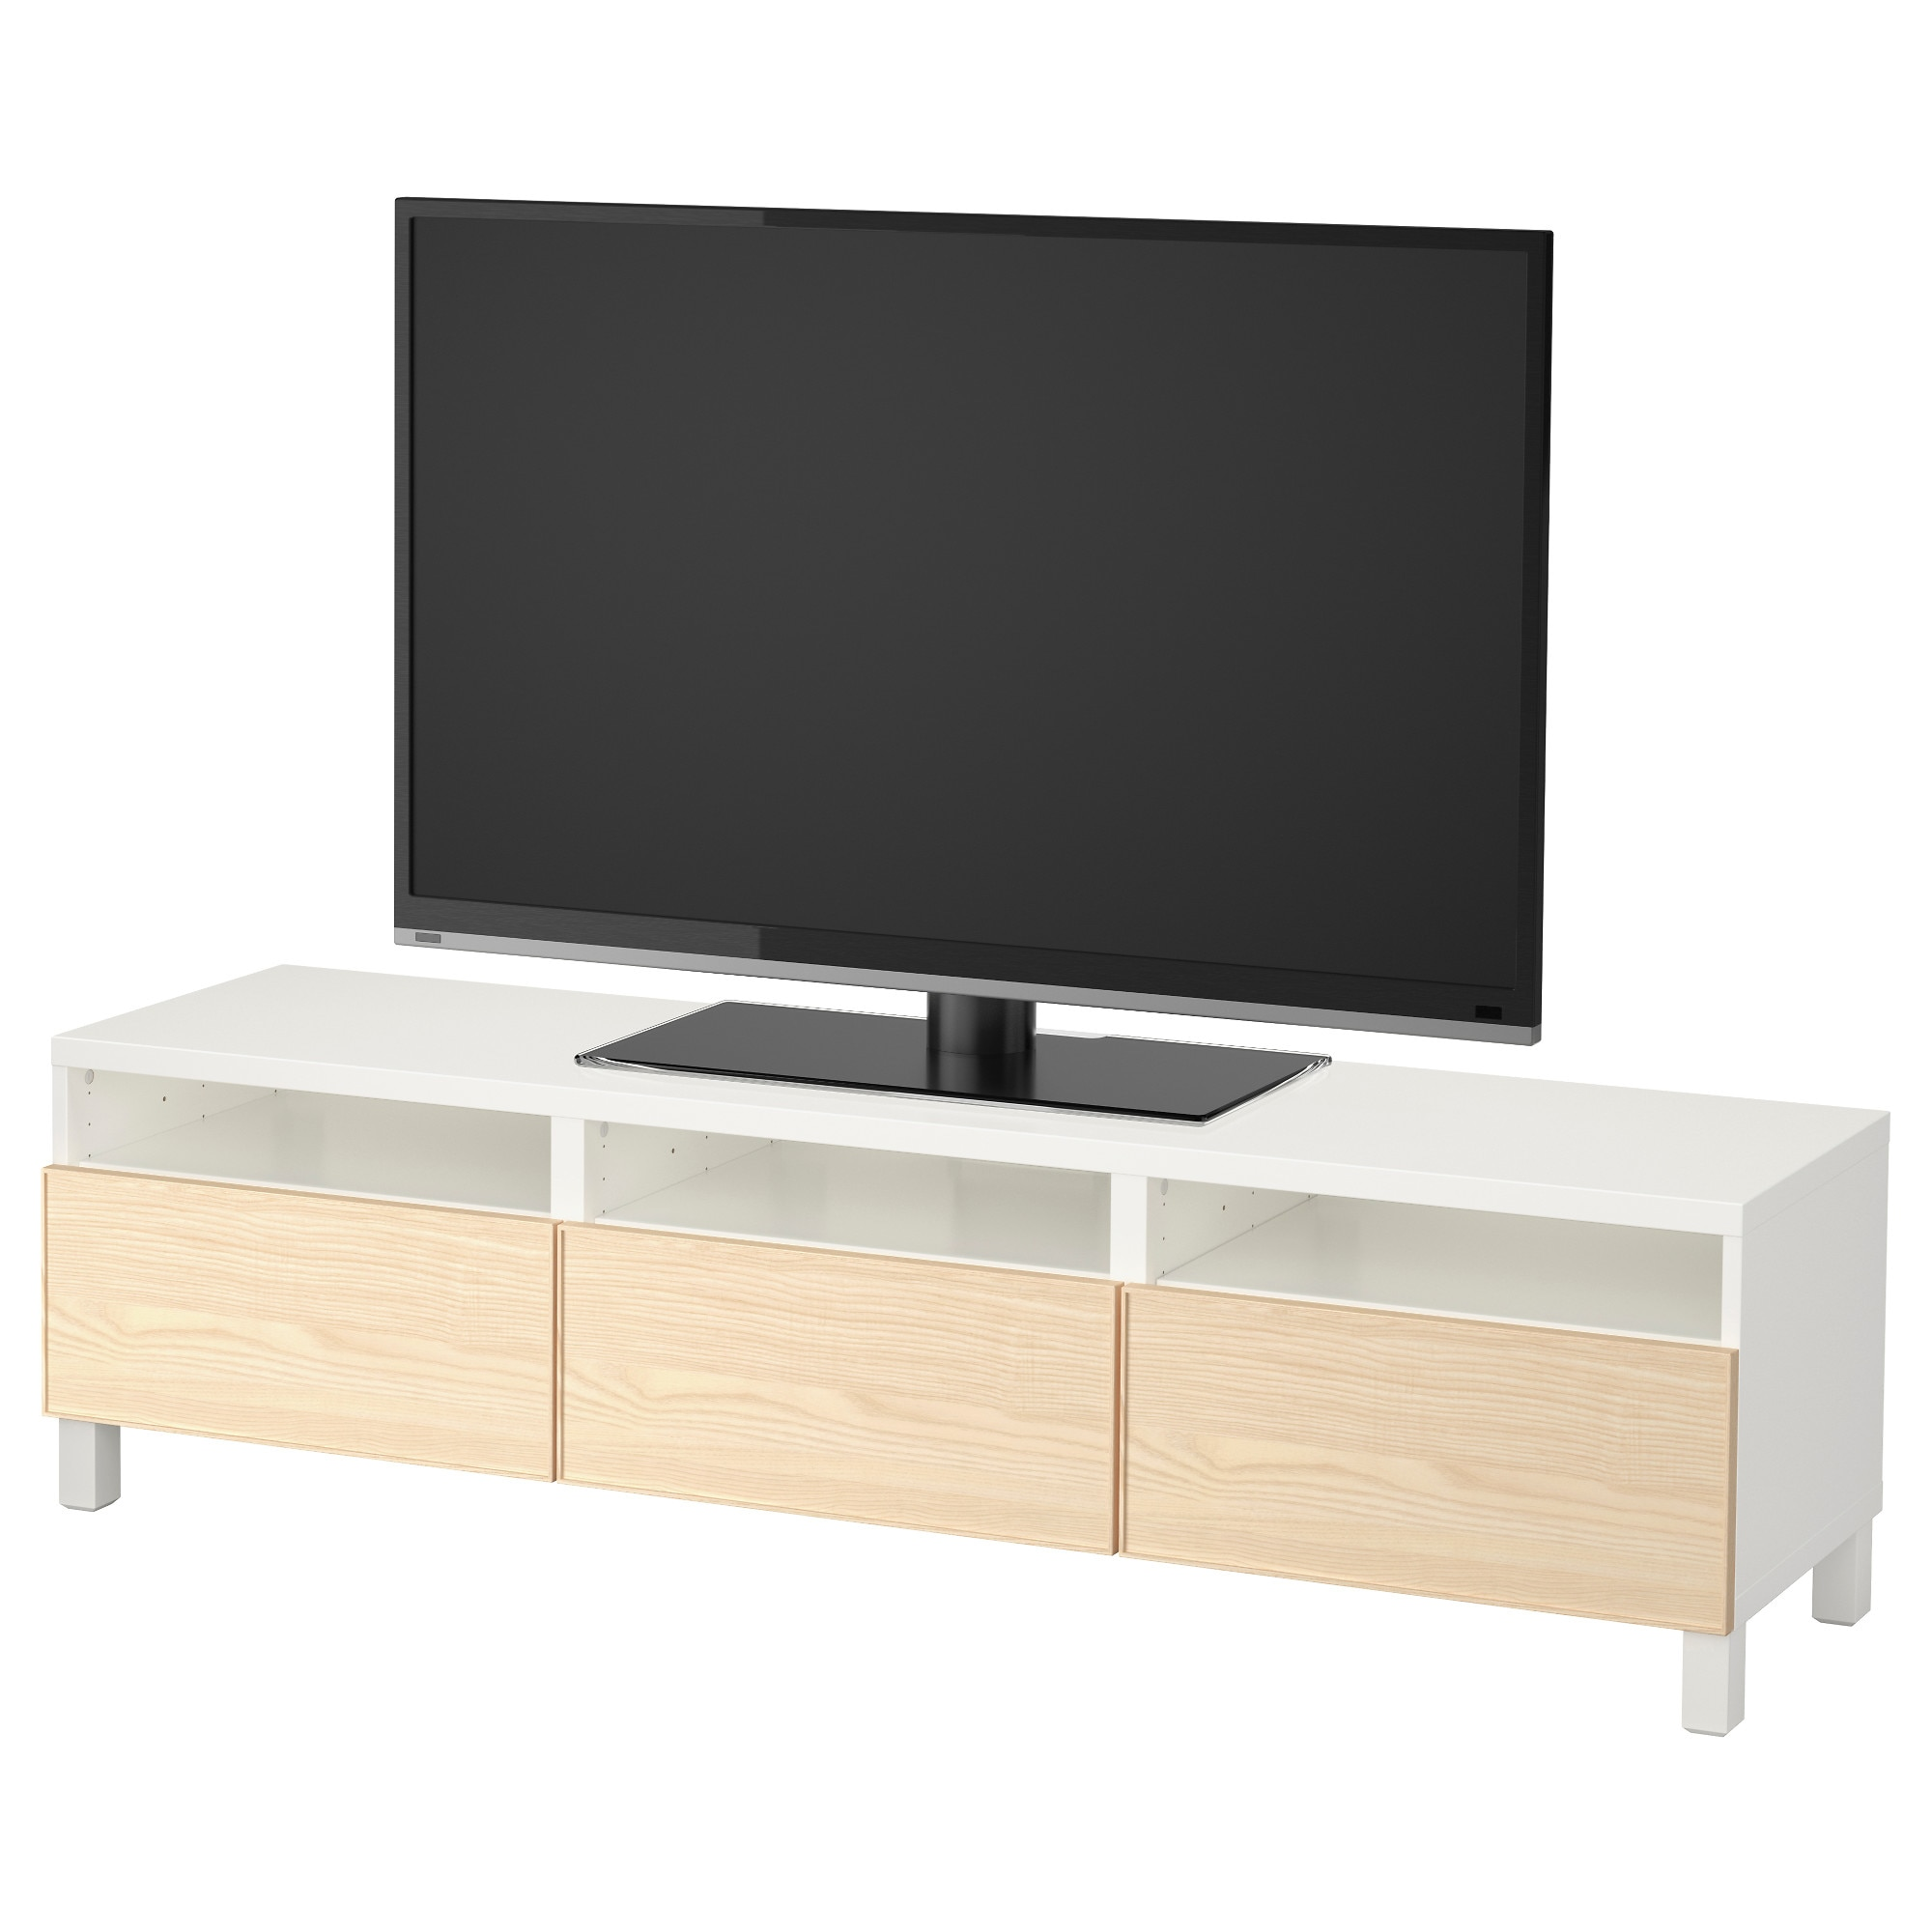 Tv Furniture Ikea # Meuble Tv Fjallbo